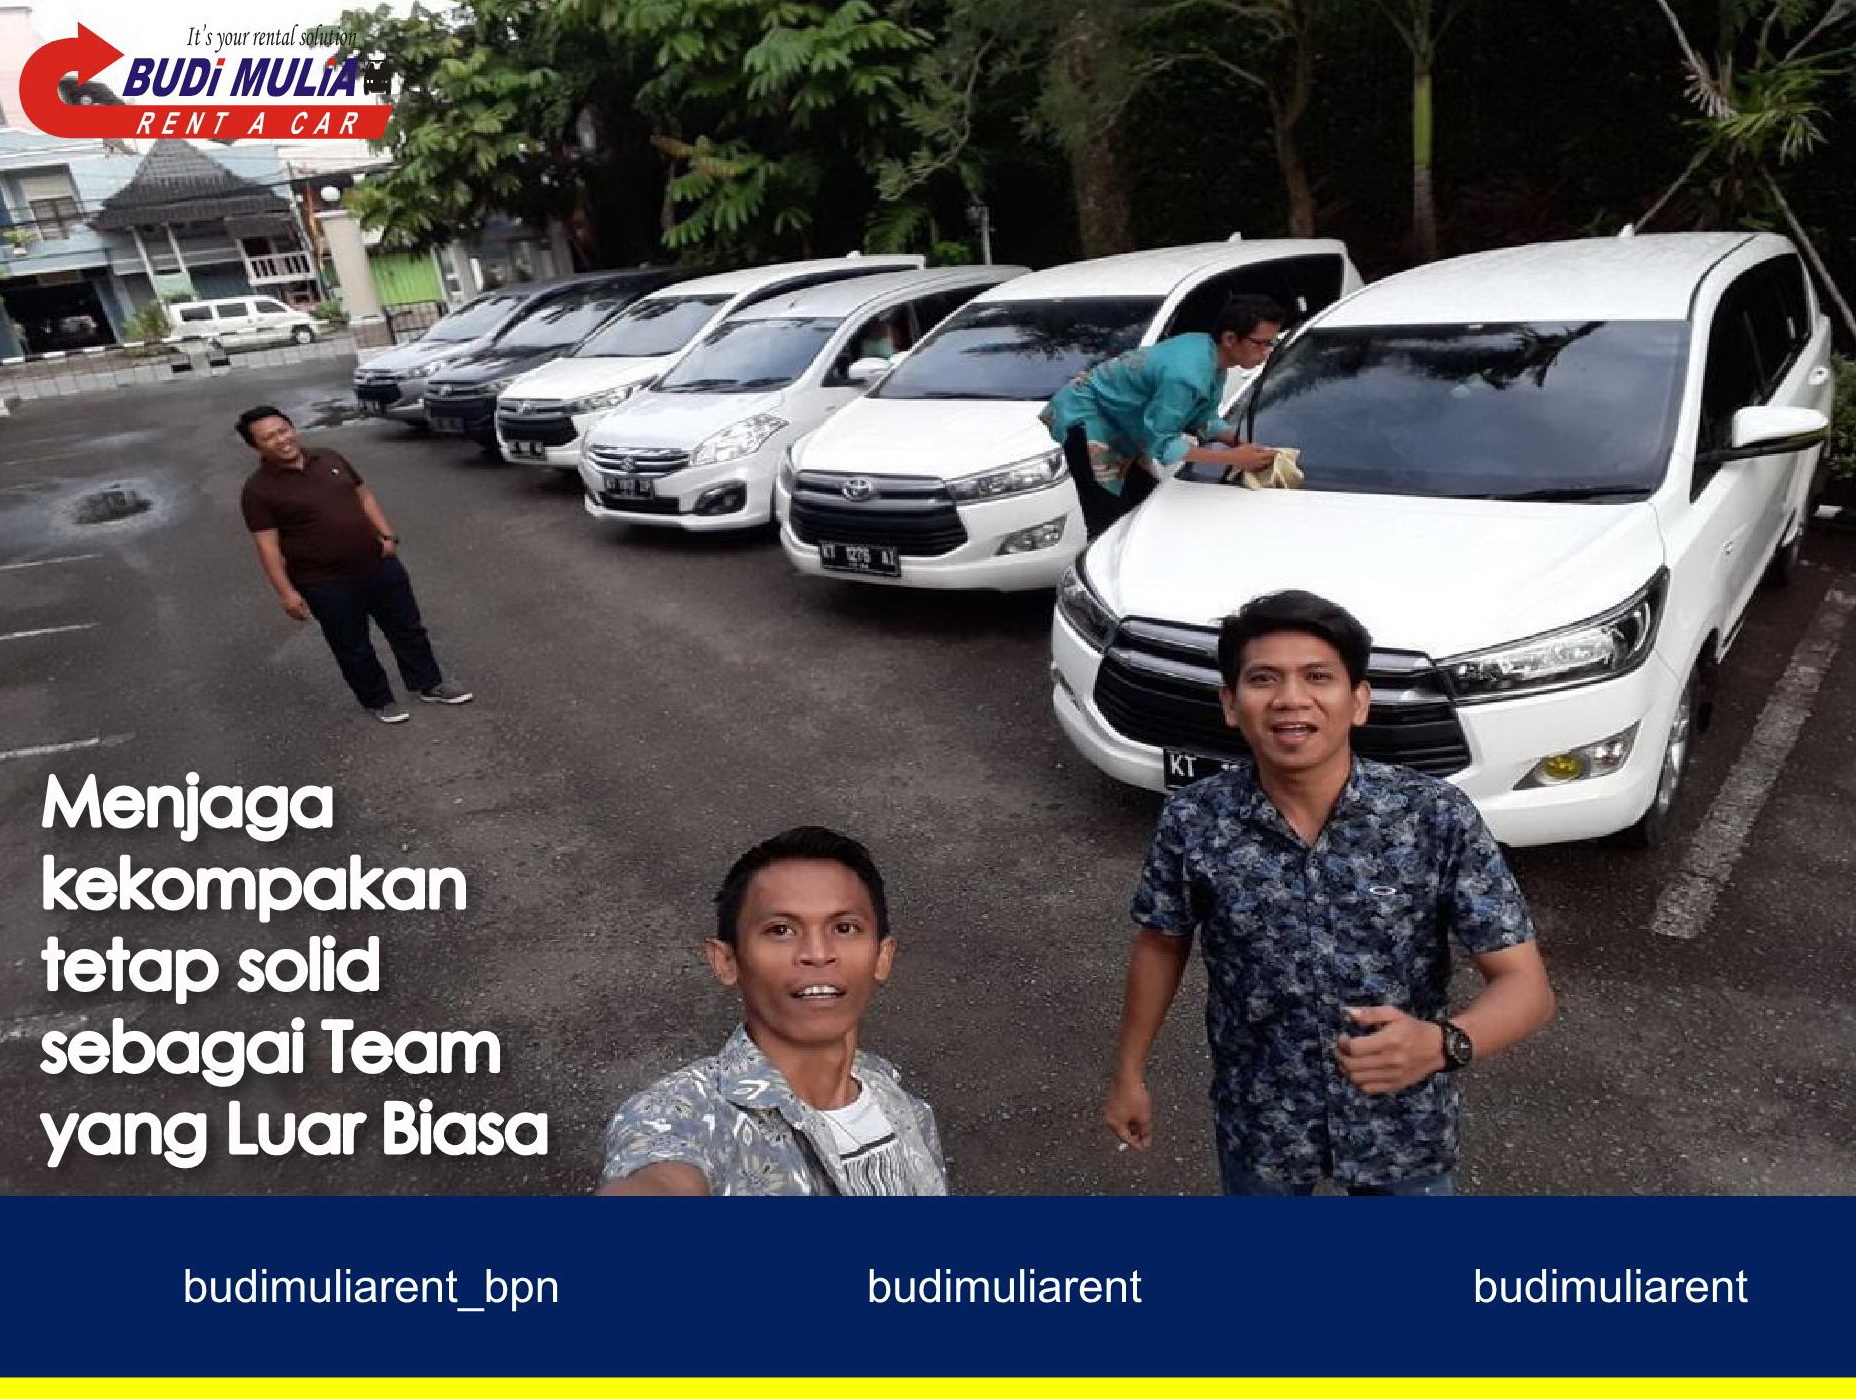 Foto BUDI MULIA RENT A CAR